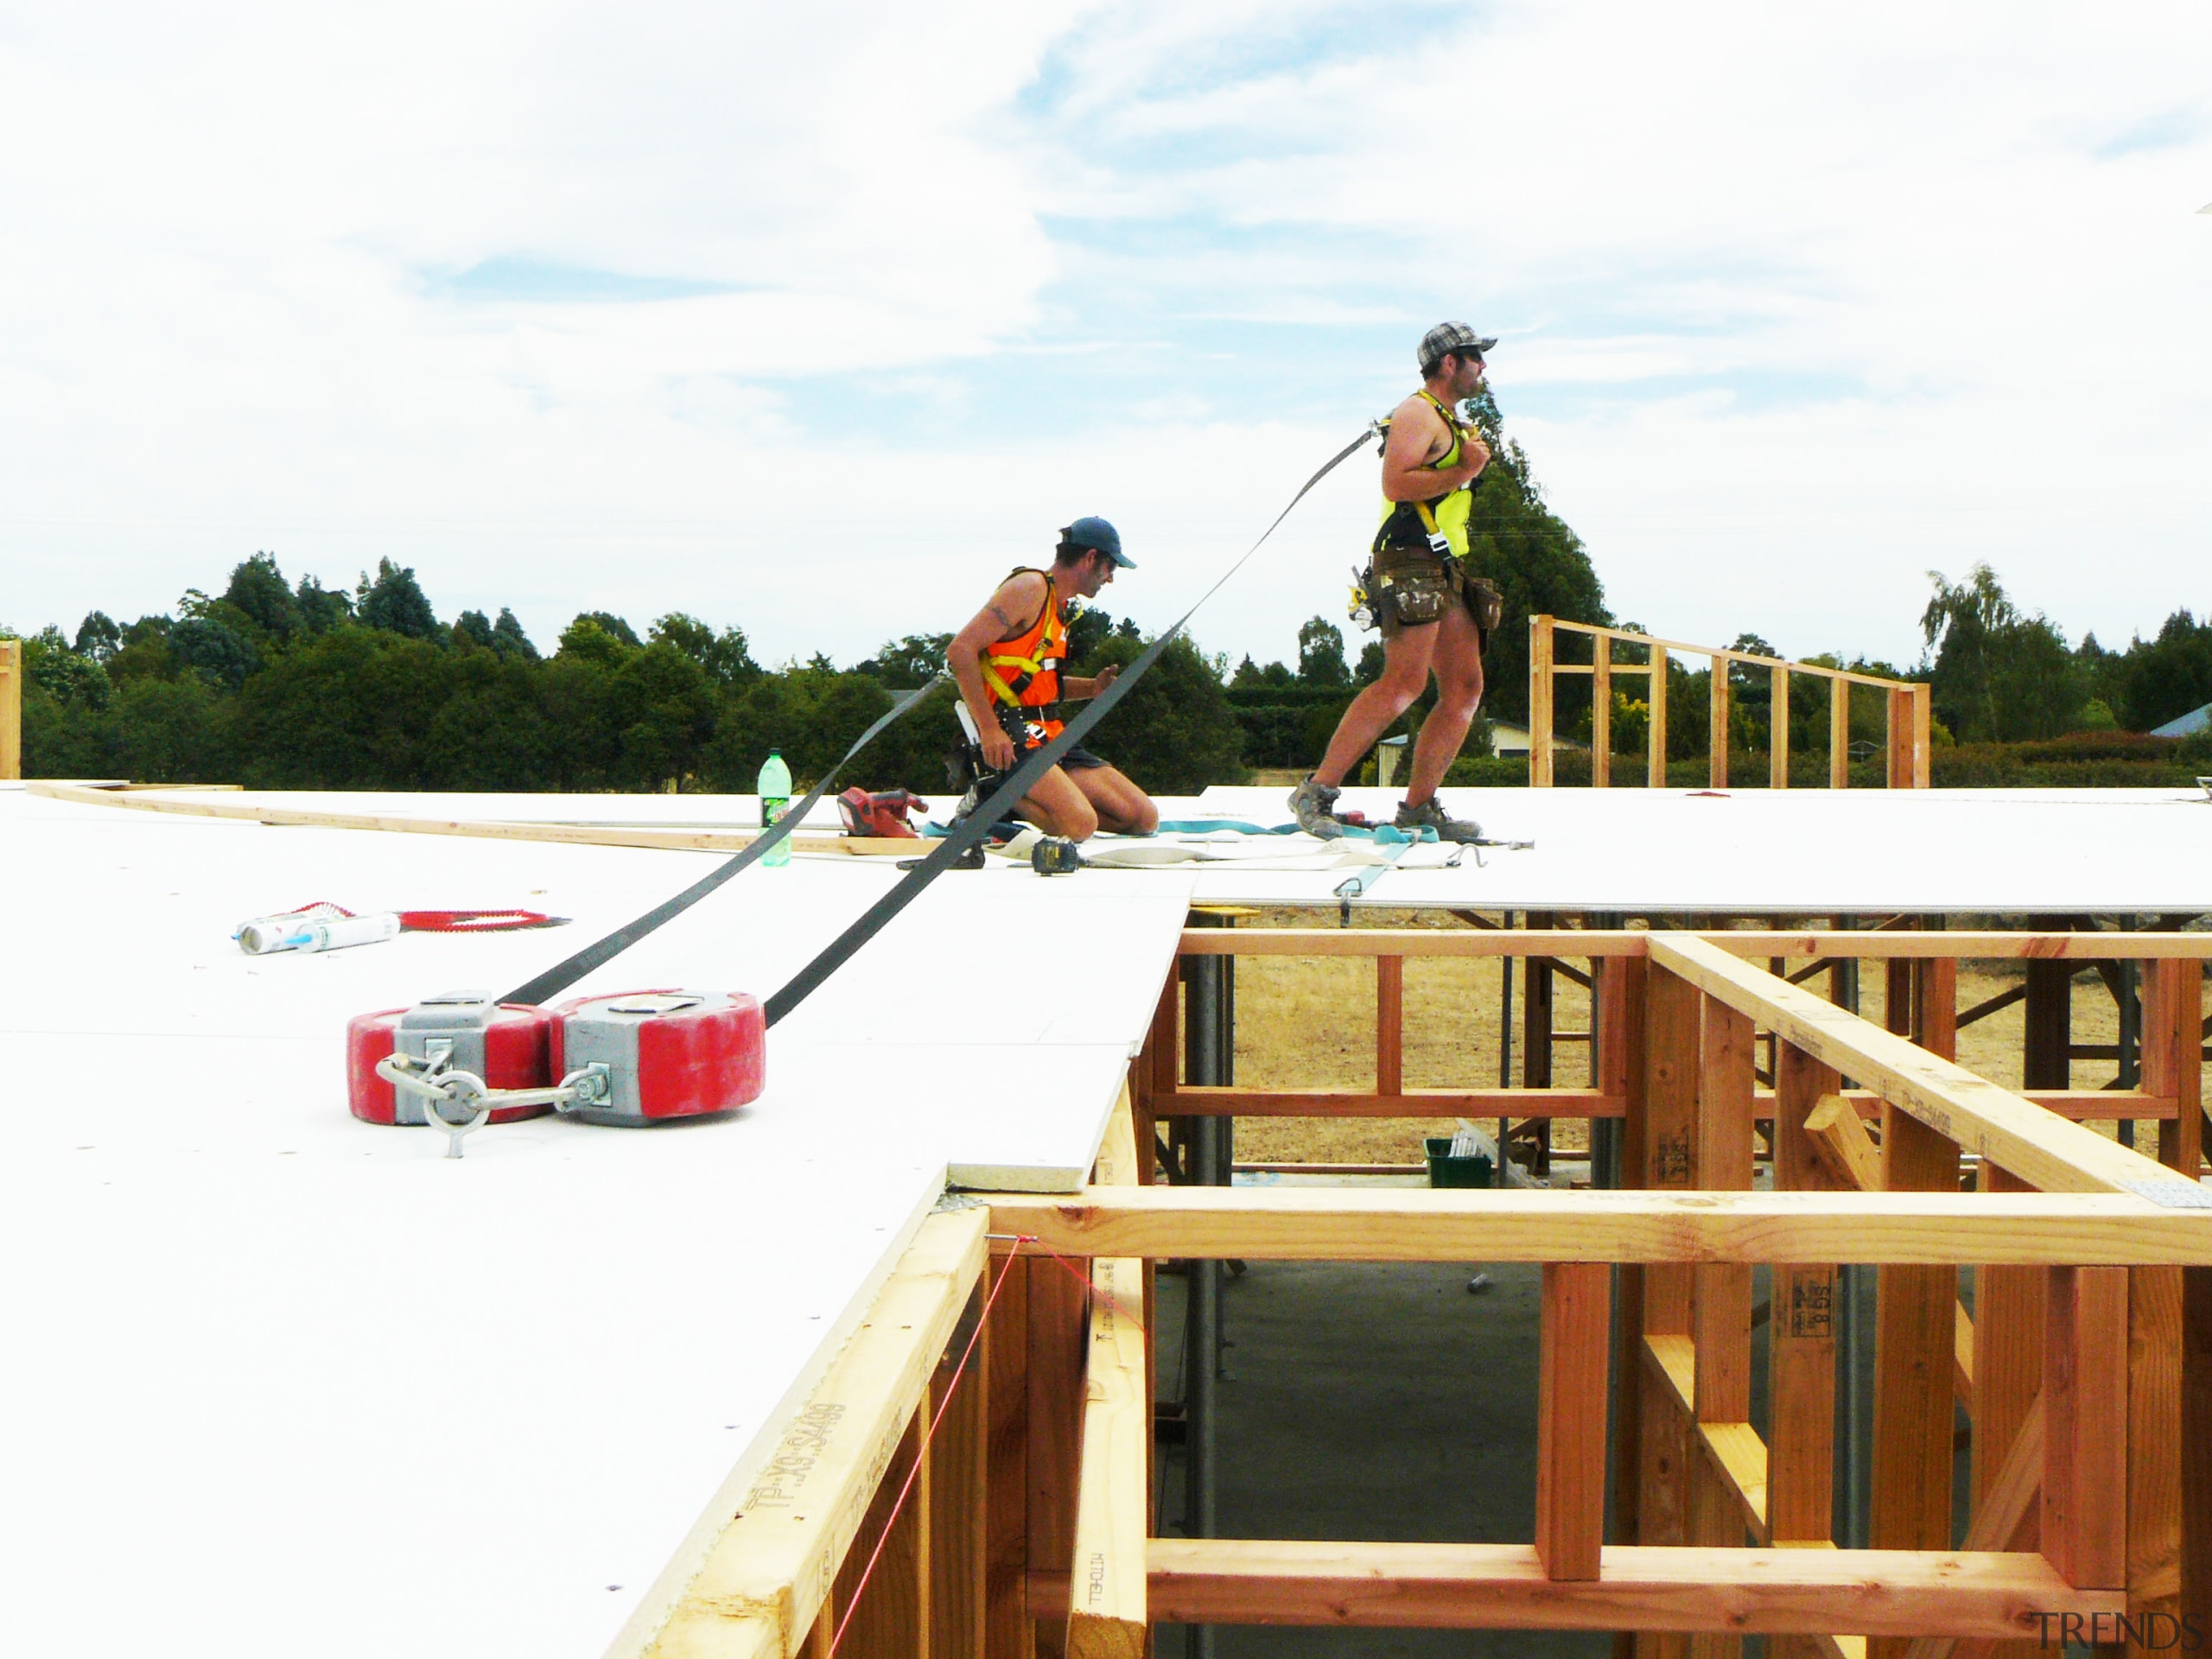 Prefabricated construction  during a build, the ICS outdoor structure, recreation, roof, white